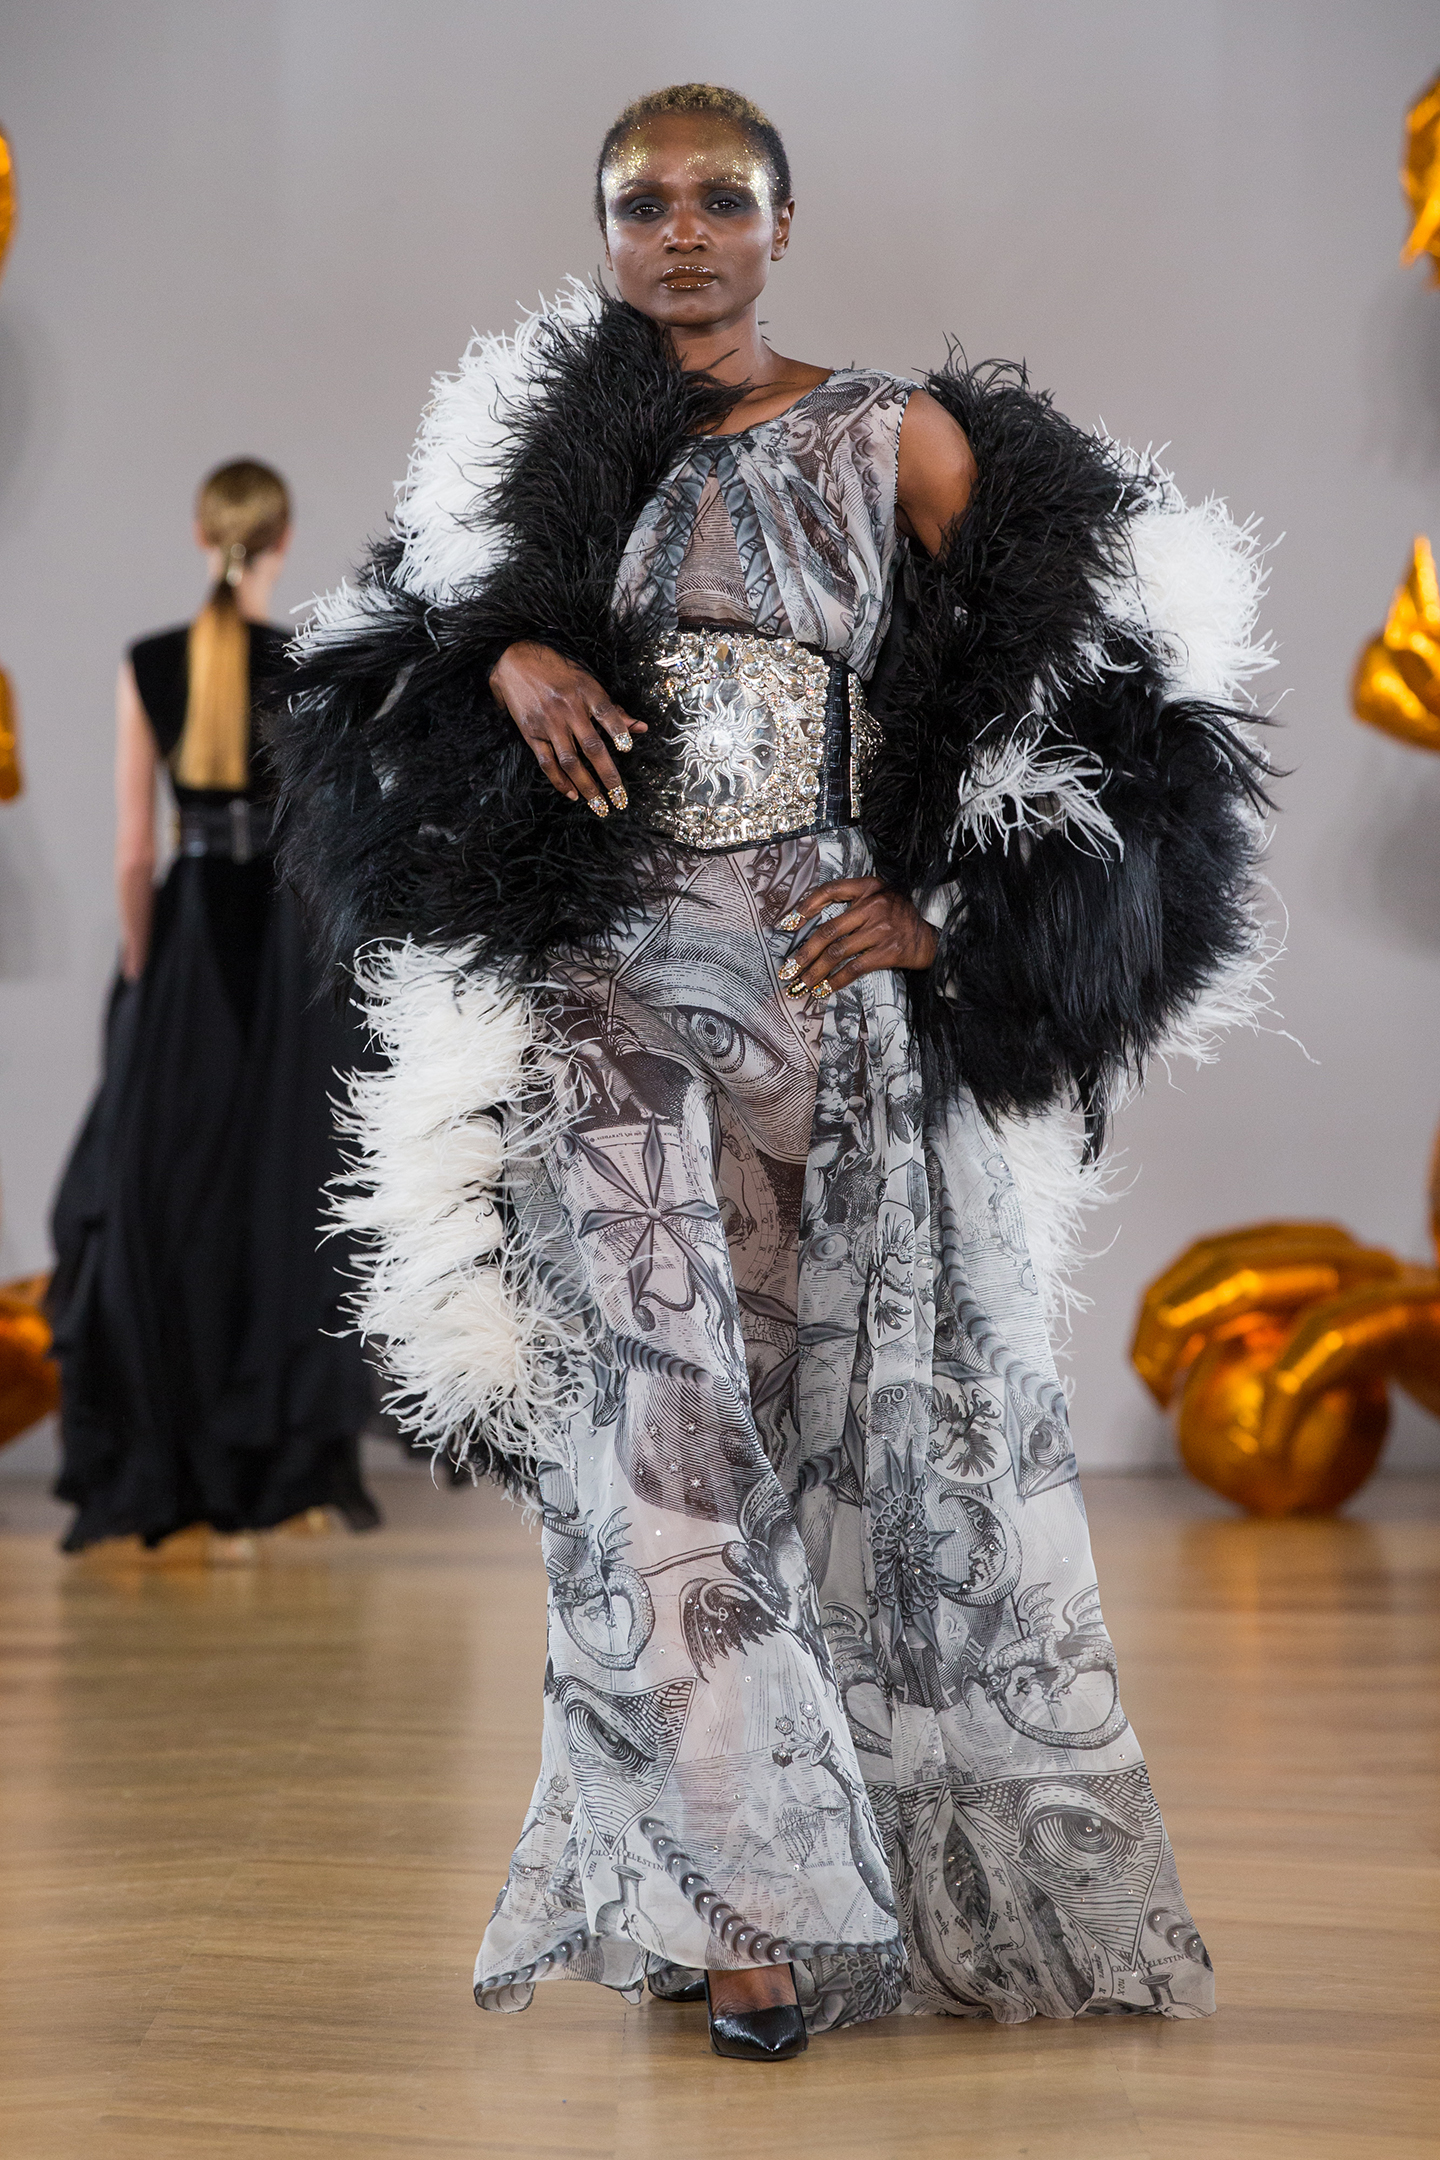 organza black and white print dress crystal belt and feathers and fur coat by on aura tout vu